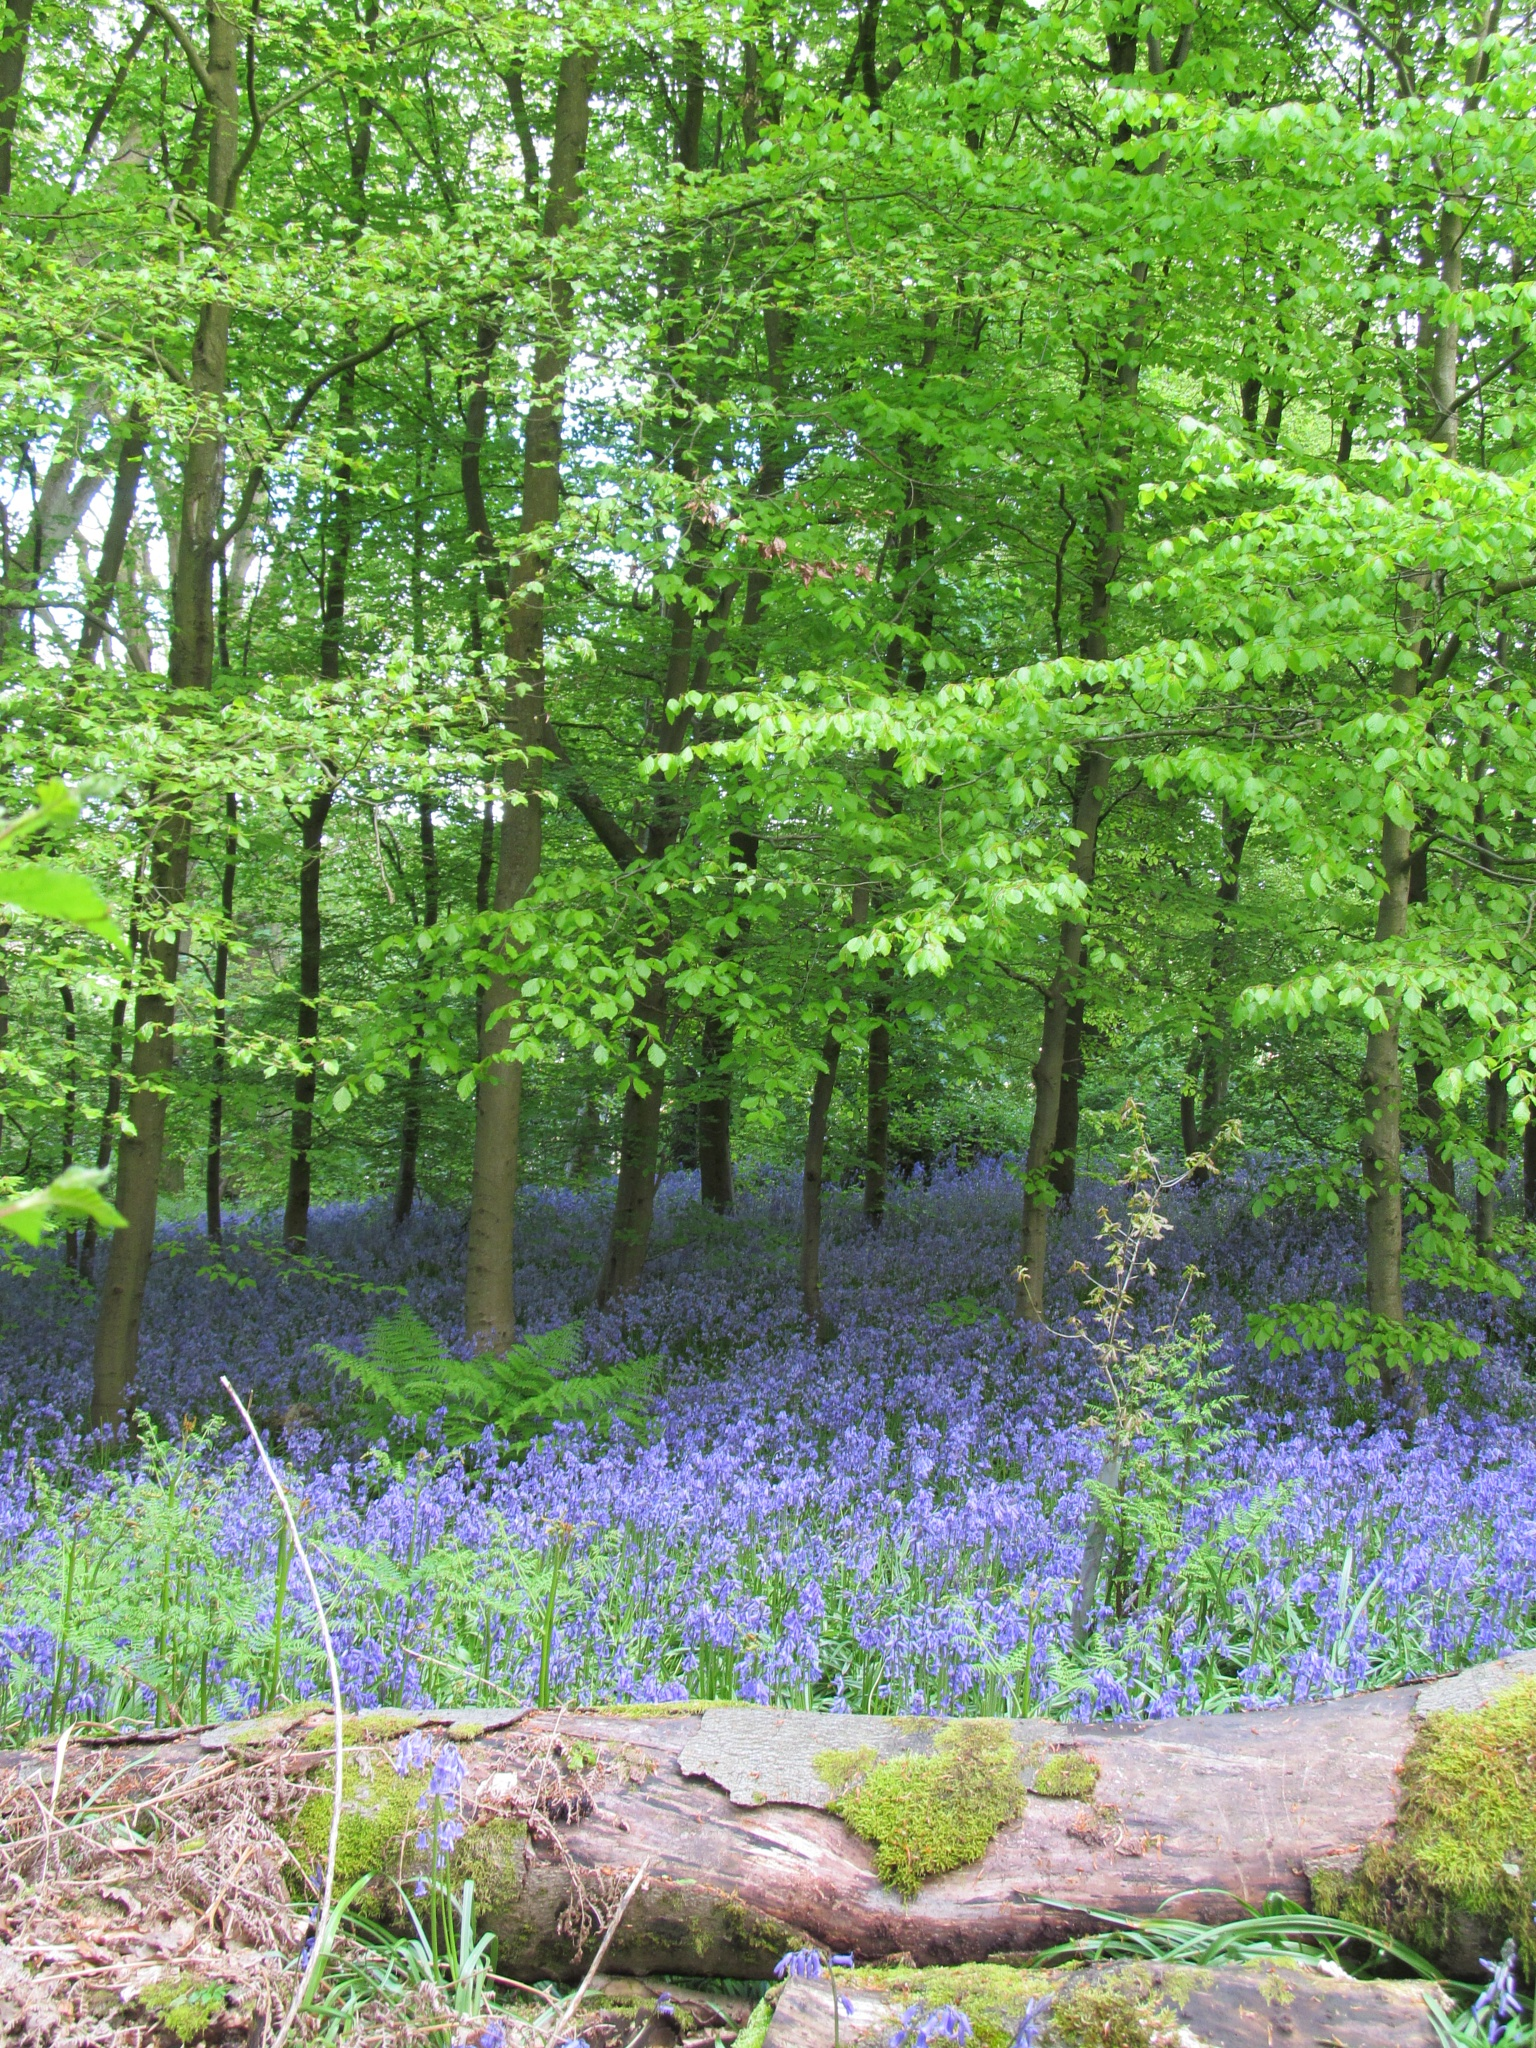 Bluebells in The Woods by RonKelly